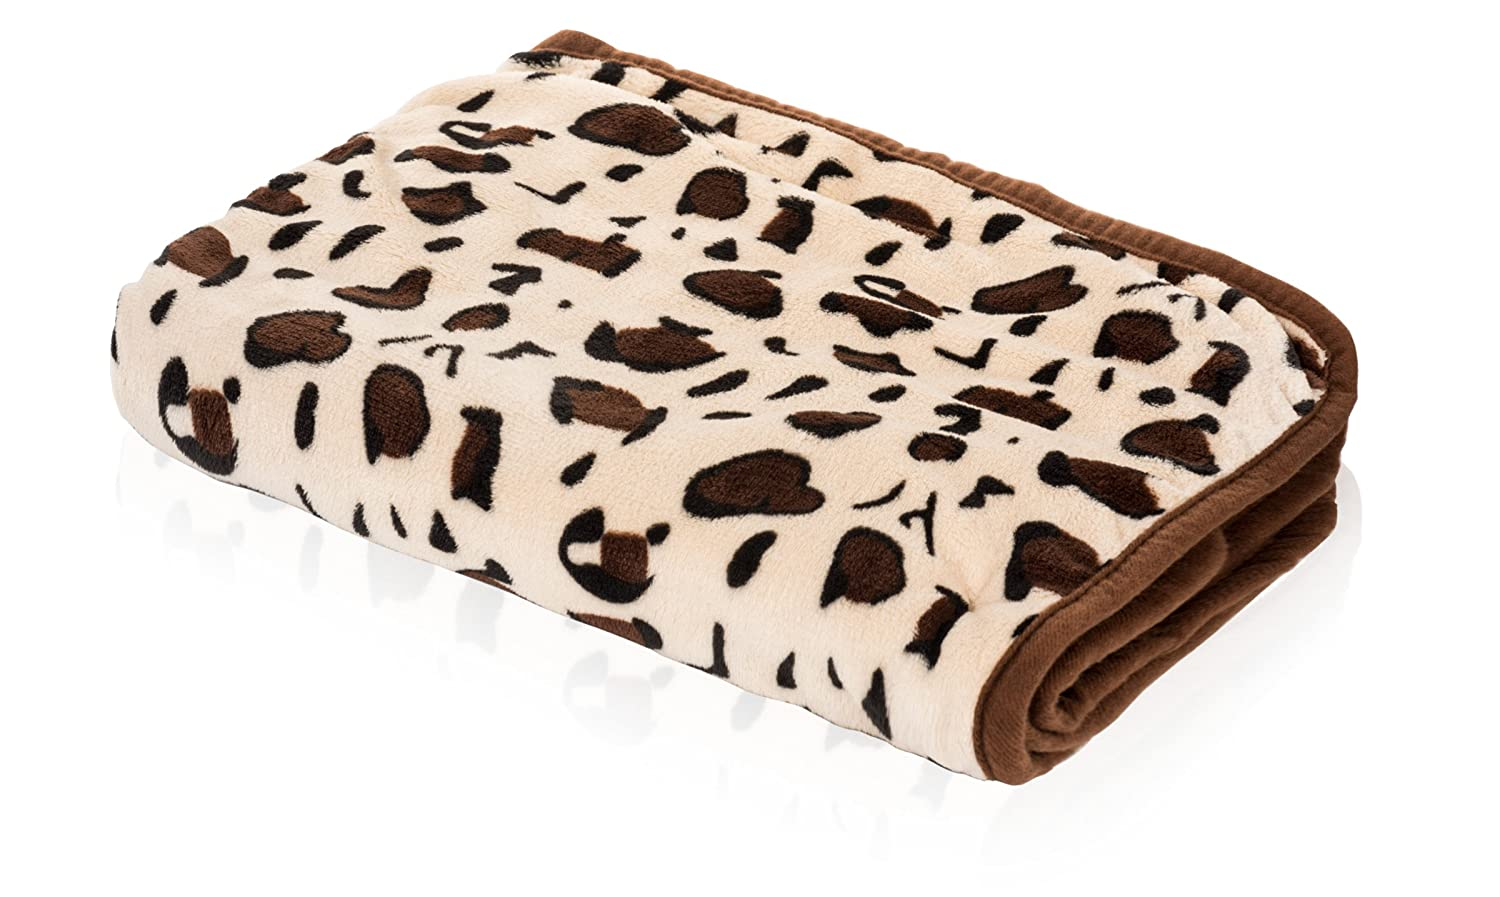 SmartPetLove Snuggle Blanket for Pets, 48 x 30, Chocolate 48 x 30 Snuggle Pet Products BLK5